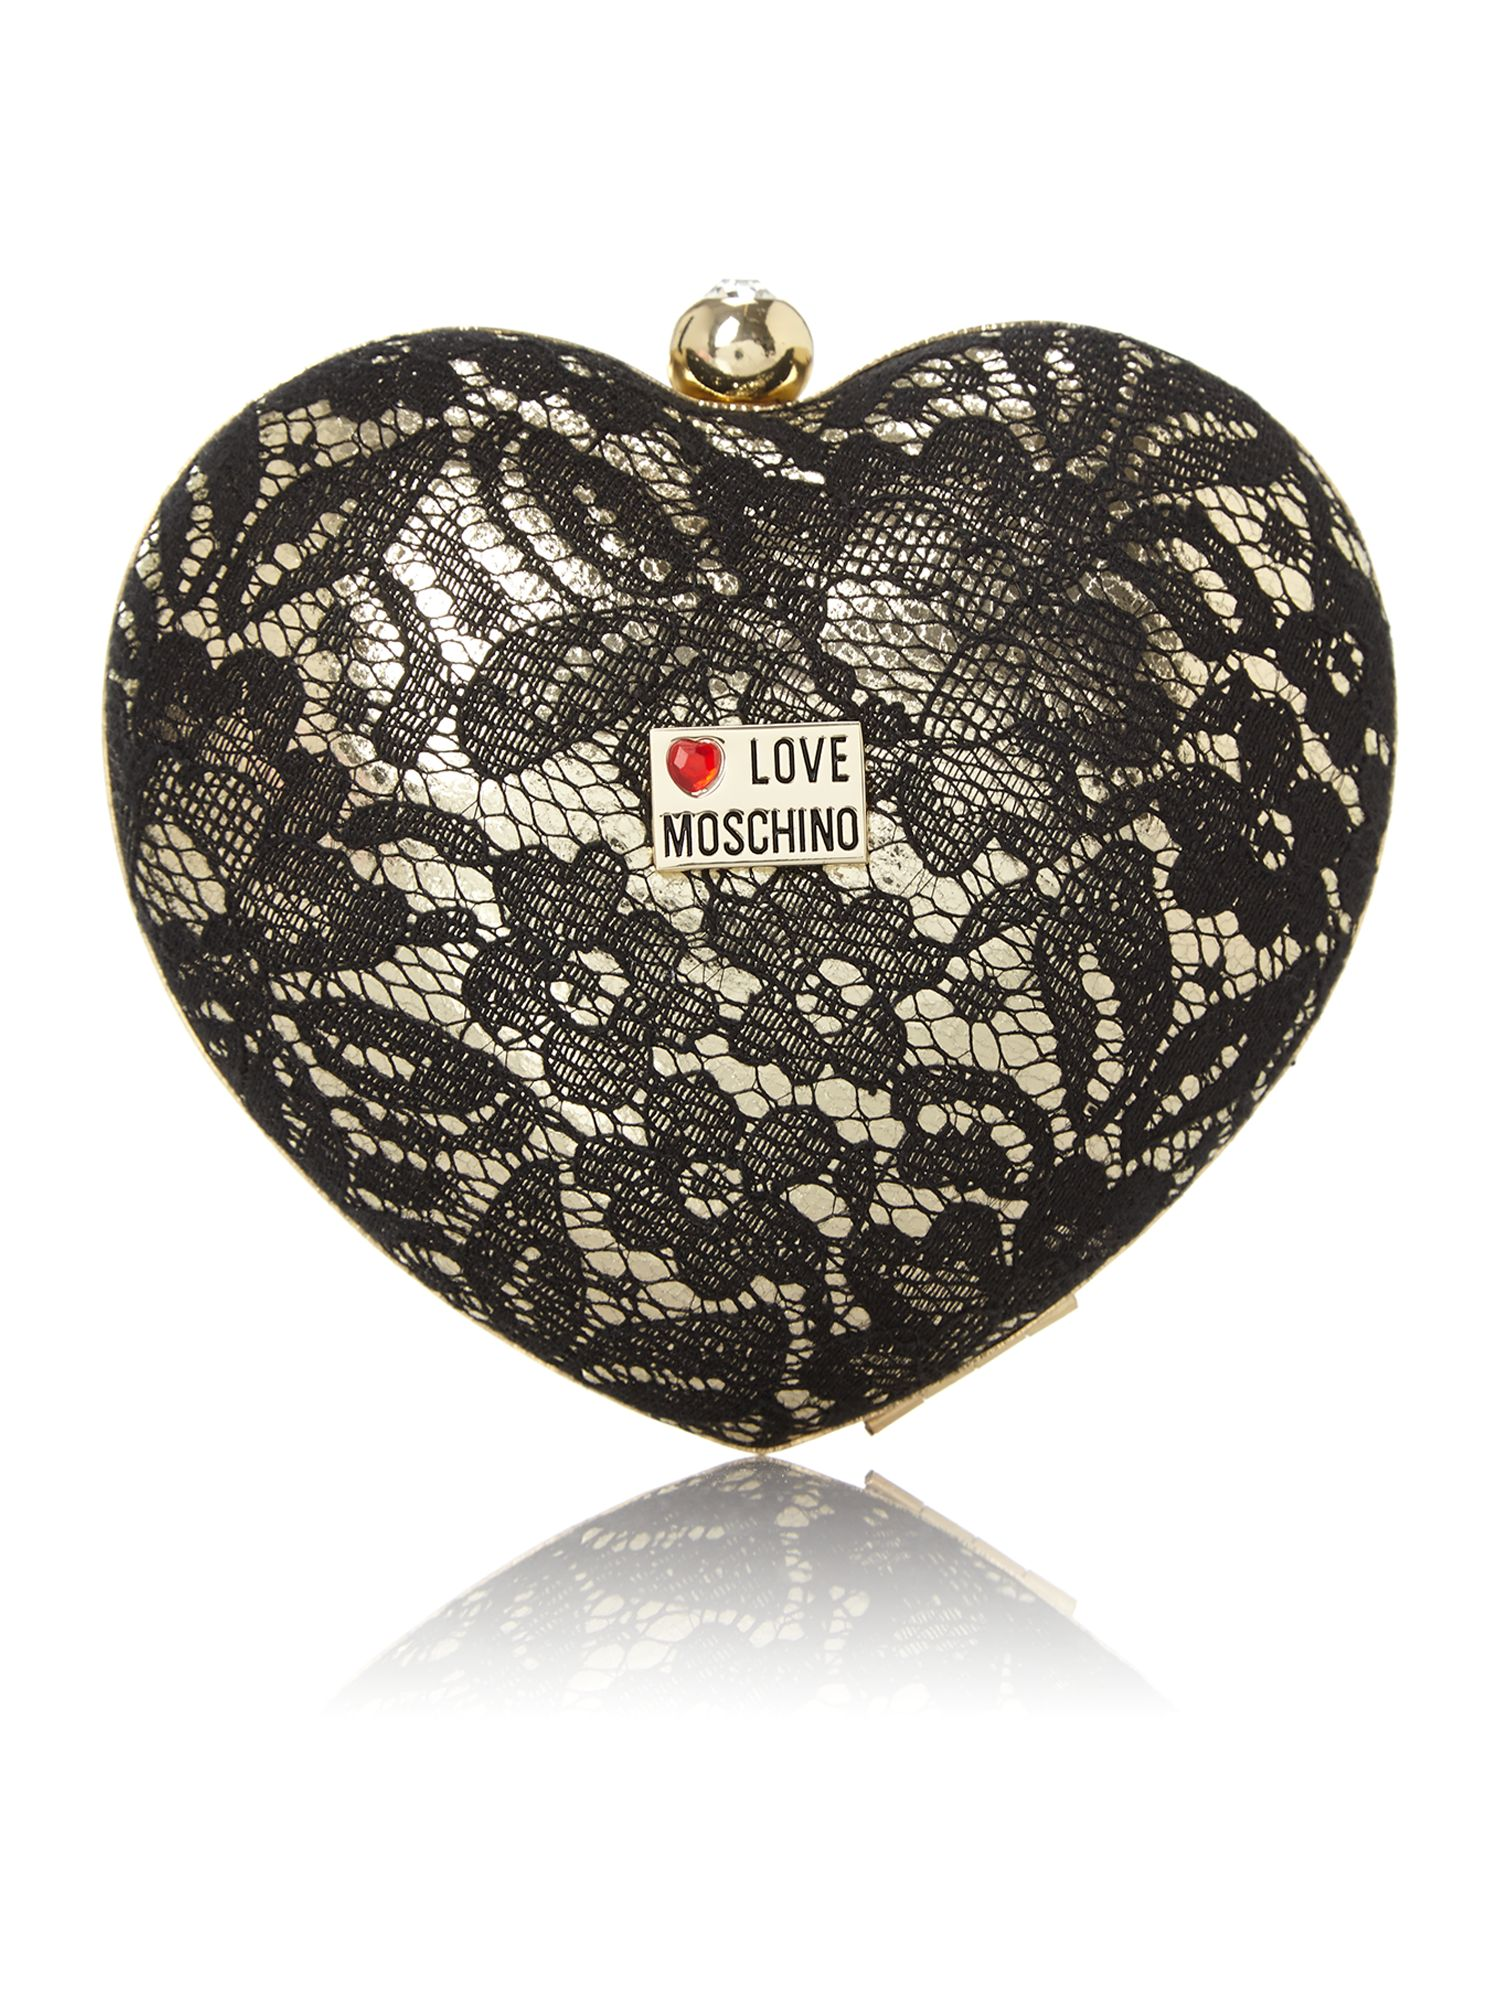 Black heart shape cross body bag